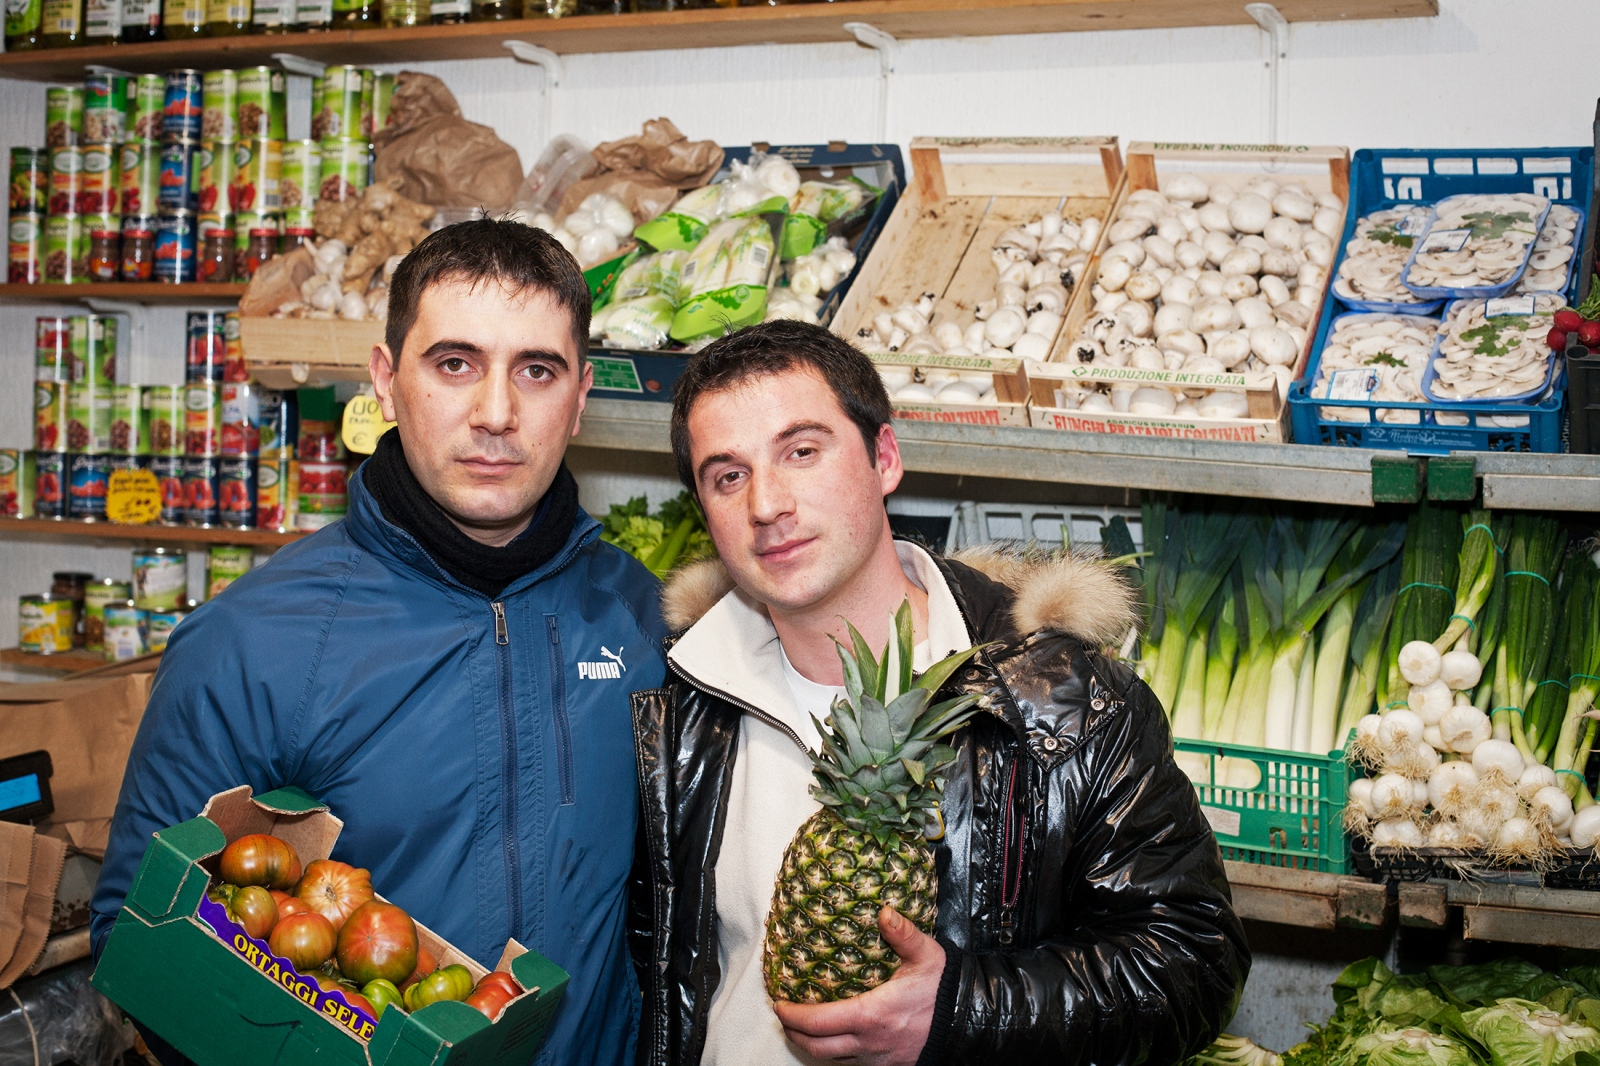 Andre' e Talat FRUIT STORE OWNERS